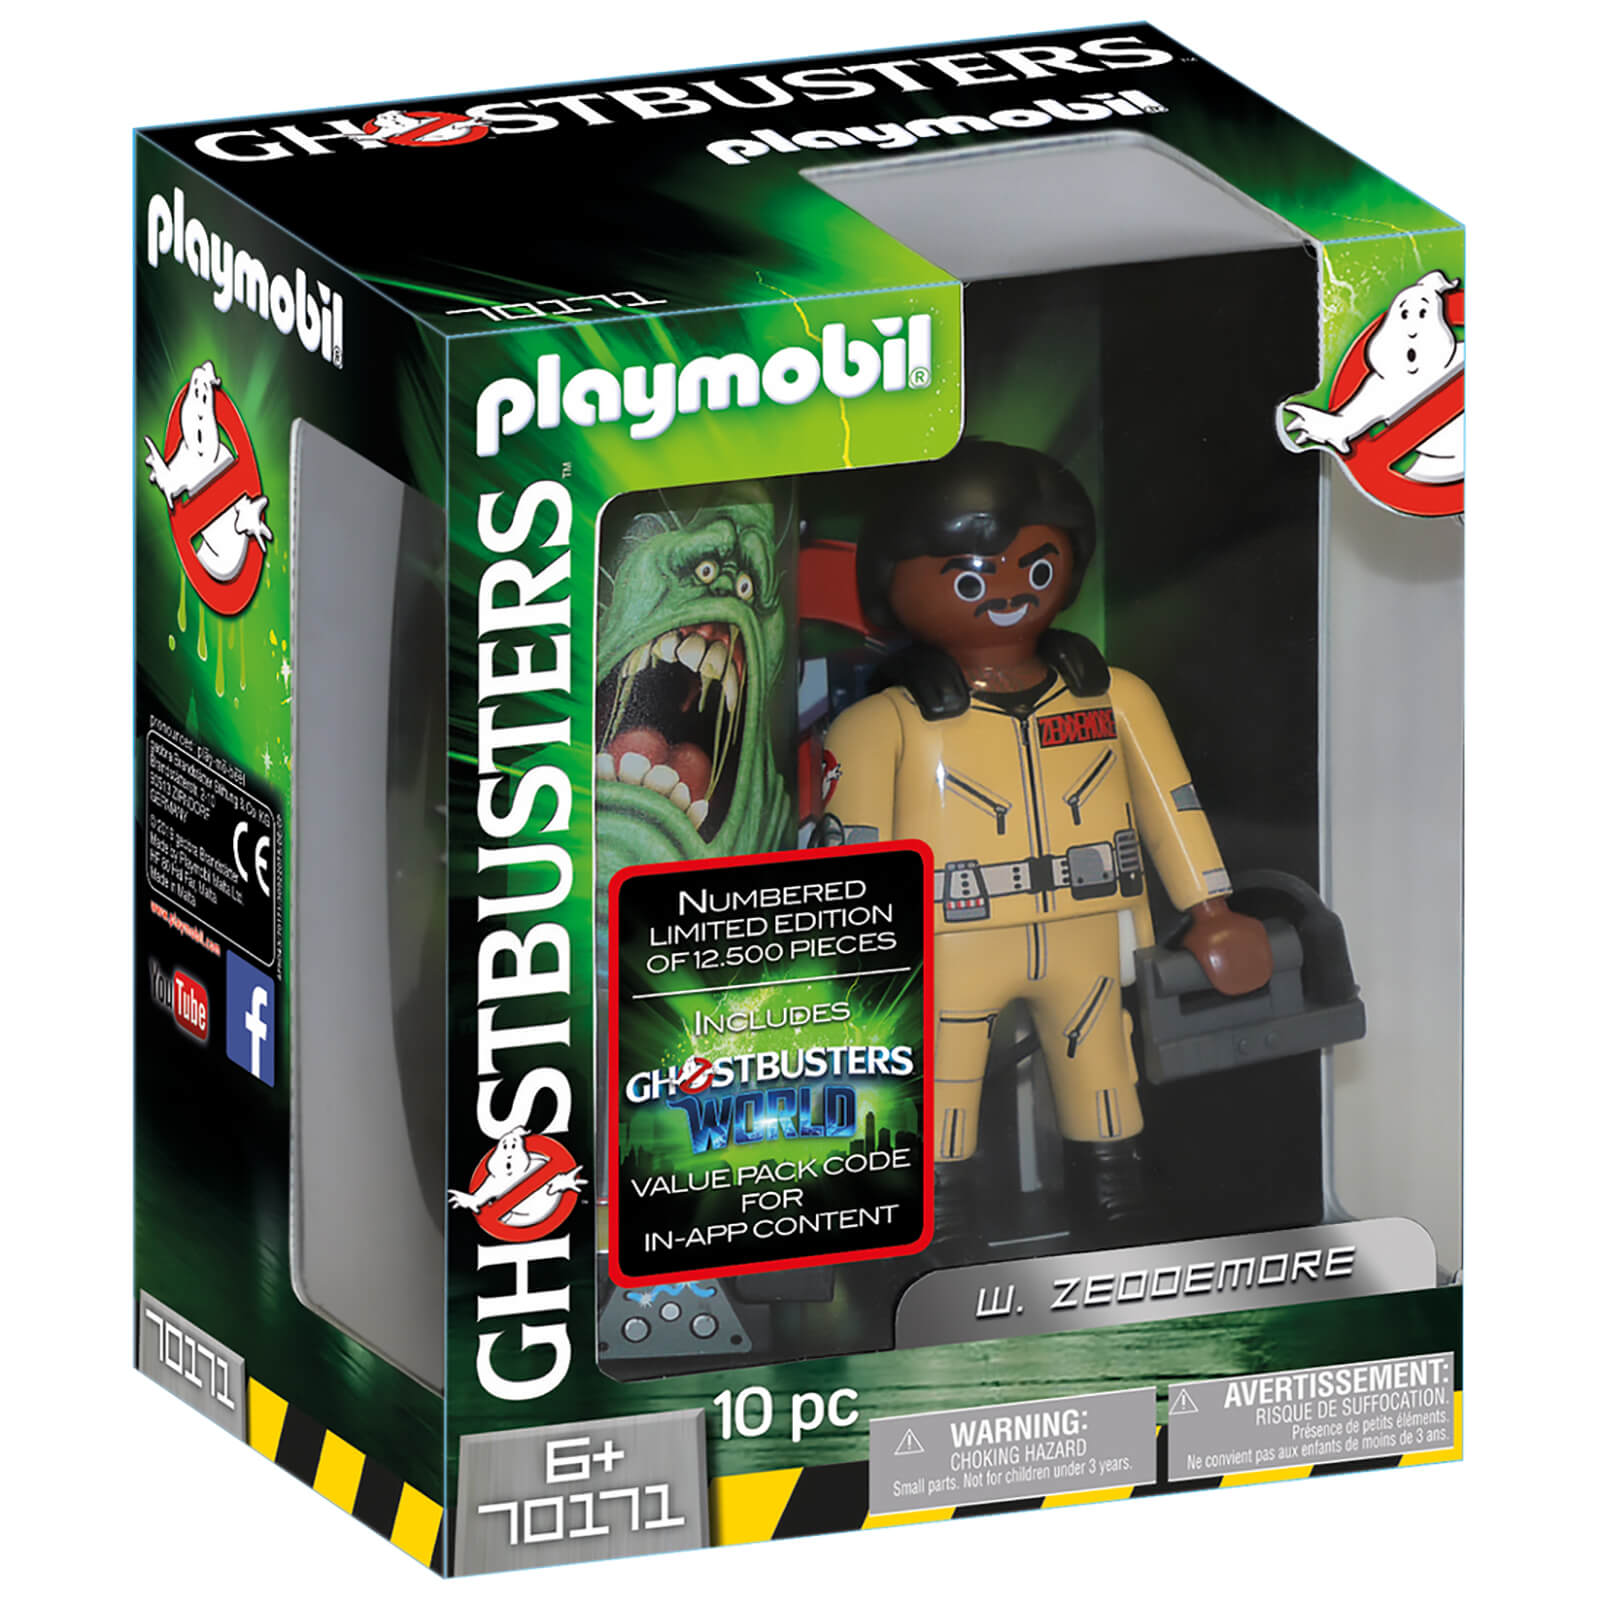 Ghostbusters Bettwäsche Playmobil Ghostbusters Collector S Edition W Zeddemore Limited And Individually Numbered 70171